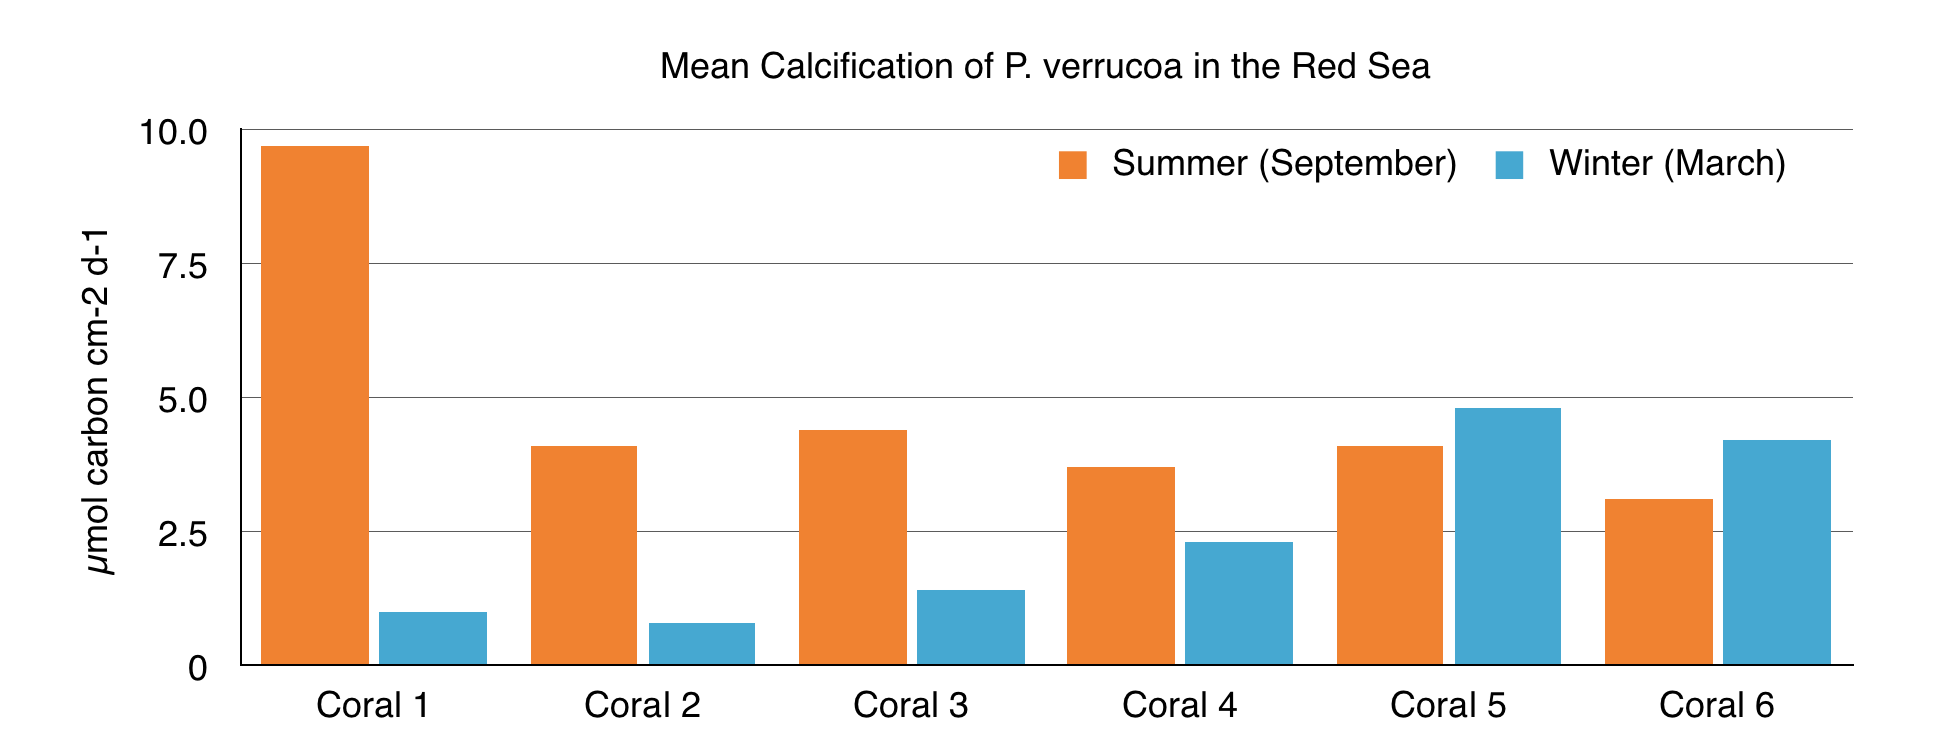 bar graph of mean calcification of P.verrucoa in the Red Sea showing six different corals in both summer and winter